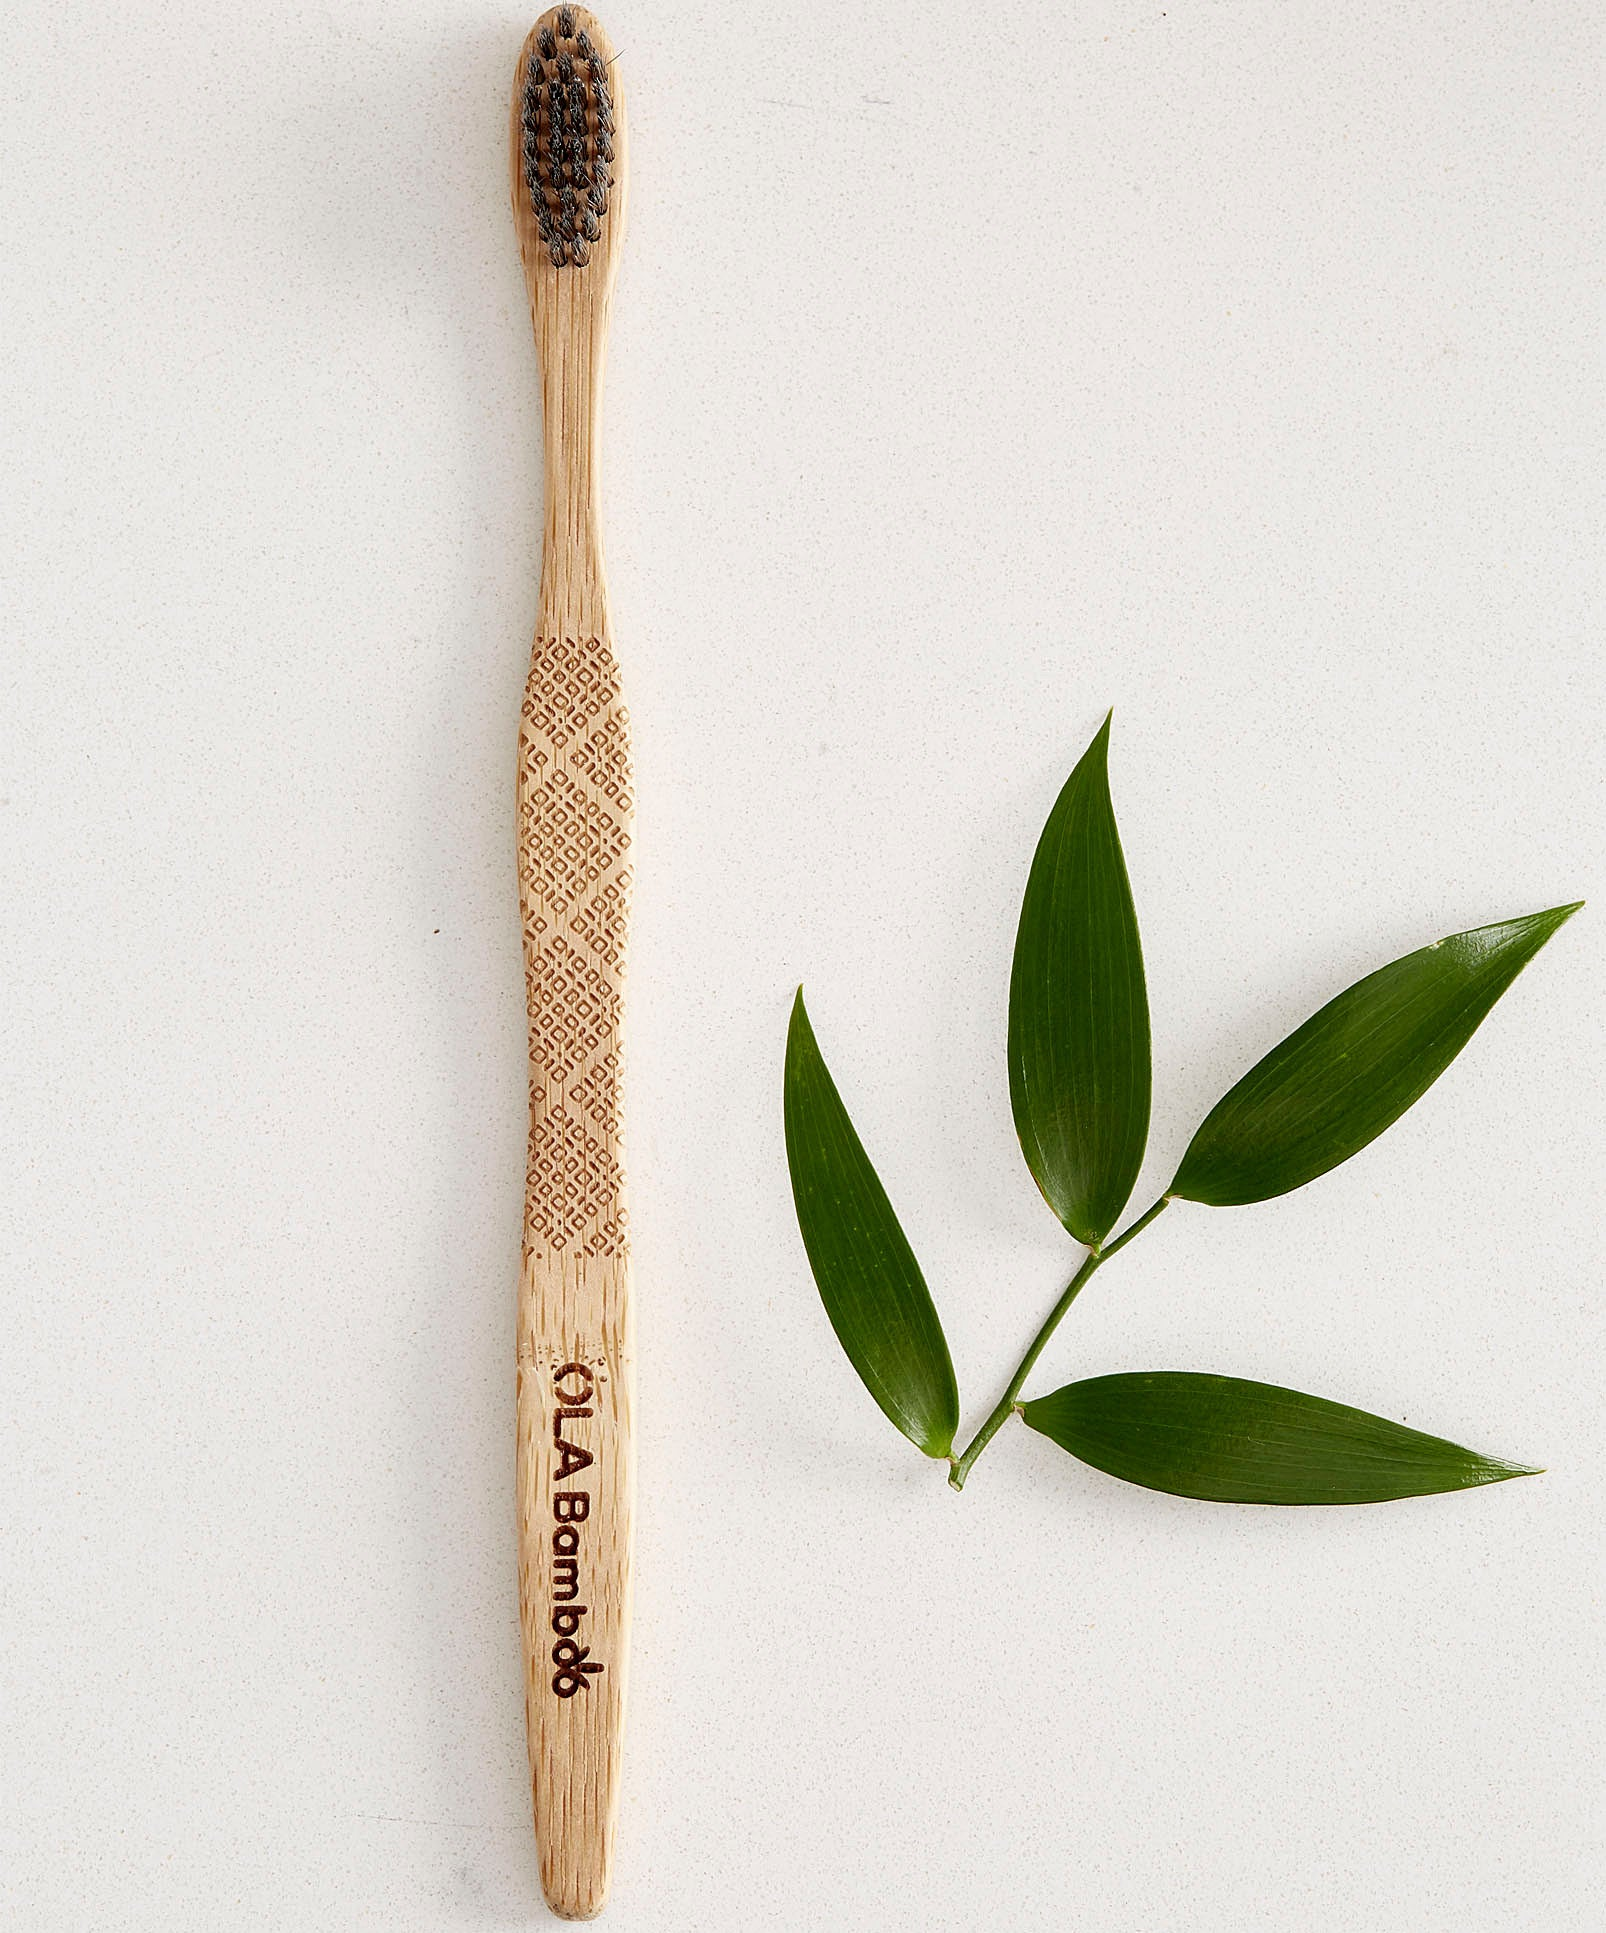 A bamboo toothbrush next to a sprig of leaves